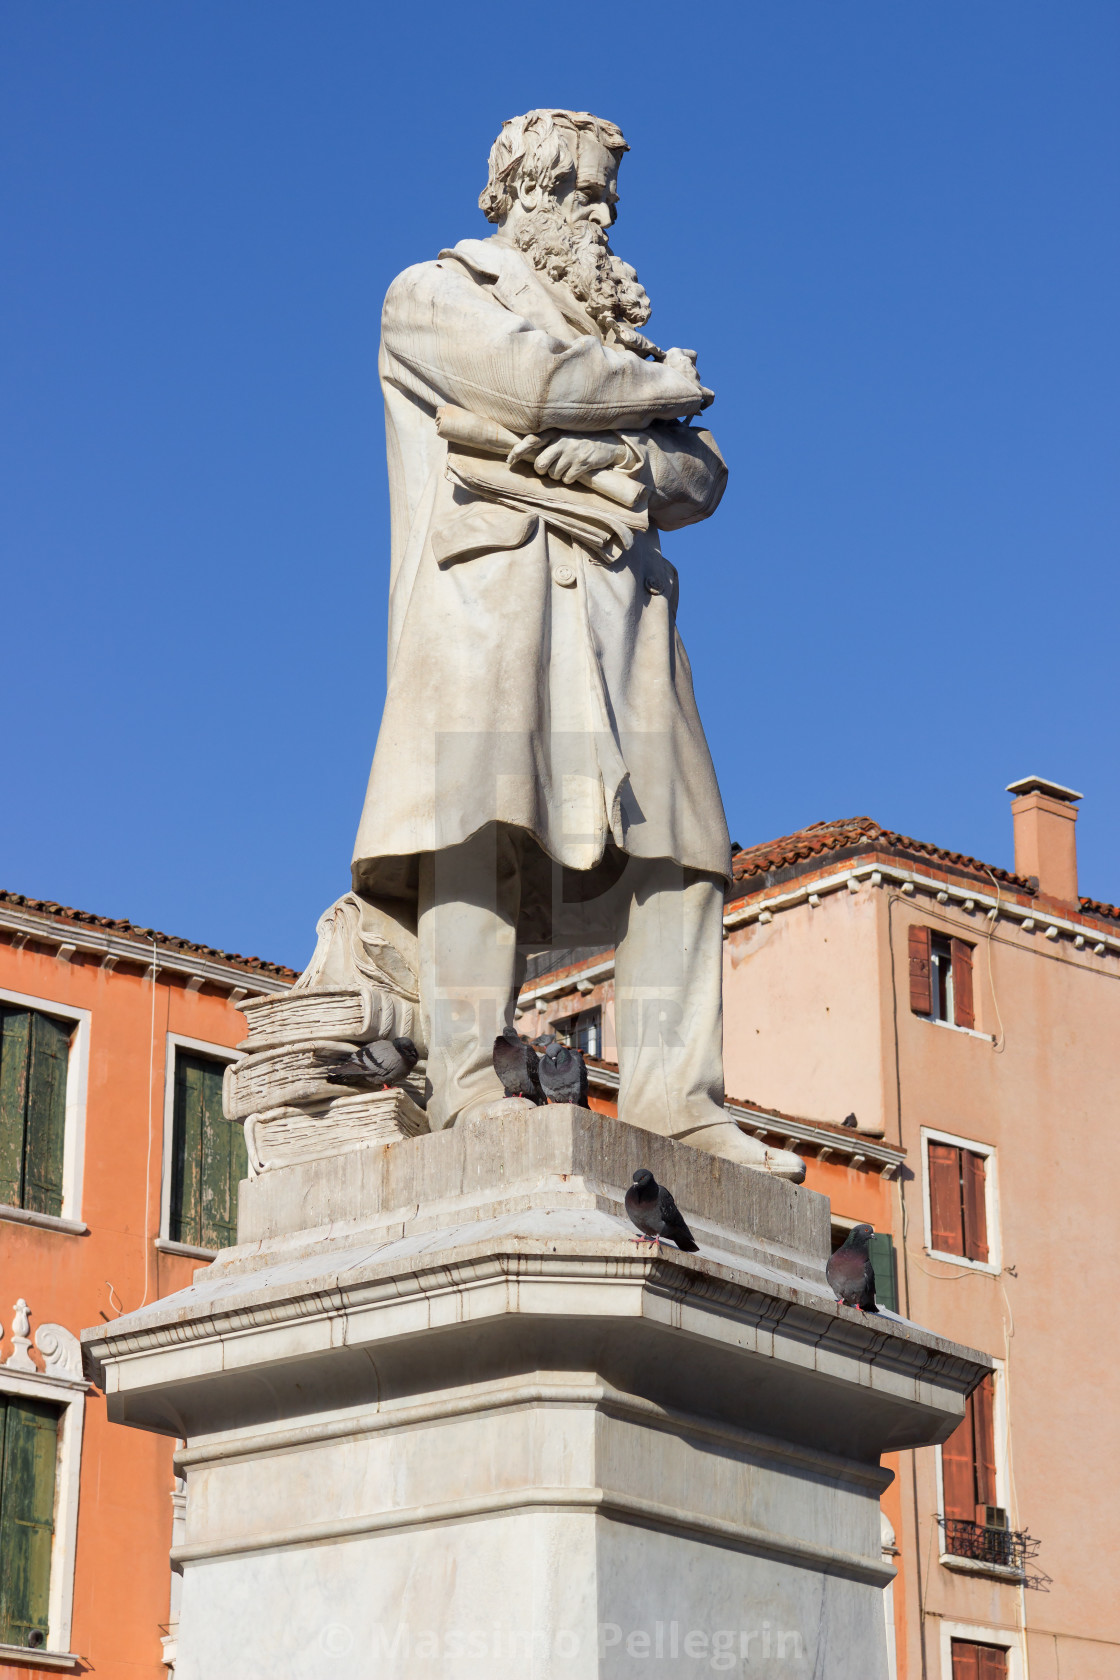 """Statue of Niccolo' Tommaseo, famous italian linguist, journalist and essayist"" stock image"